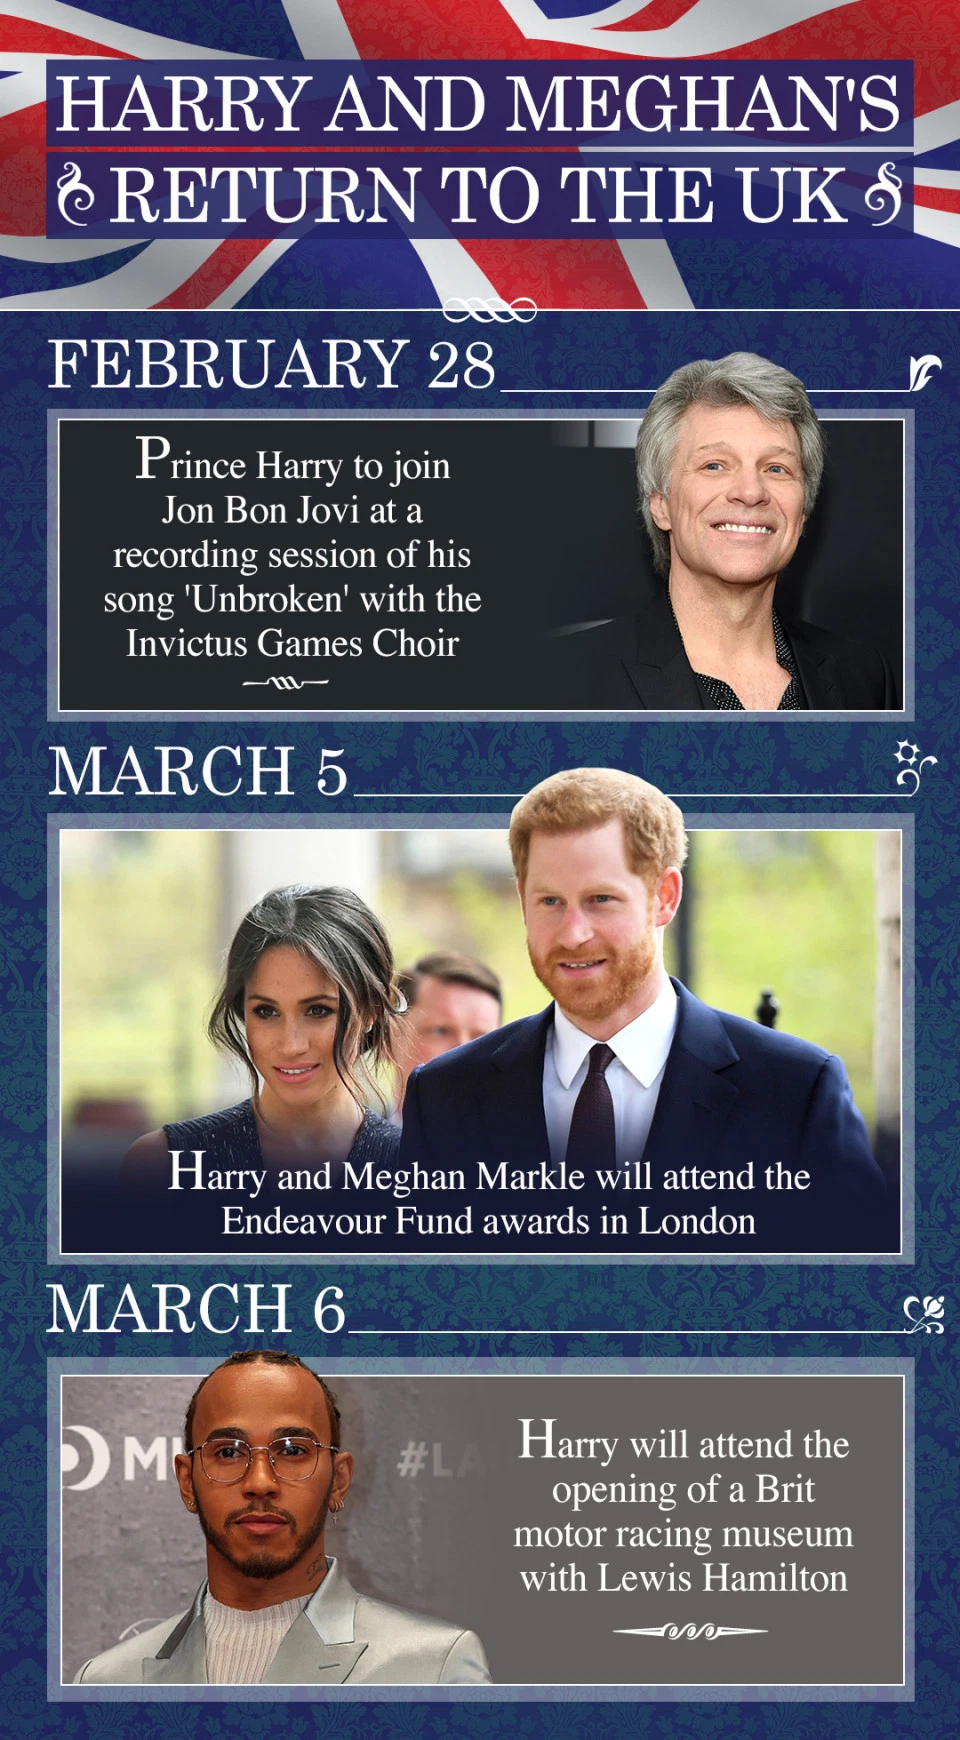 Prince Harry Arrives Back In Uk Ahead Of Last Set Of Engagements Before Megxit Prince Harry Meghan Markle Prince Harry Harry And Meghan